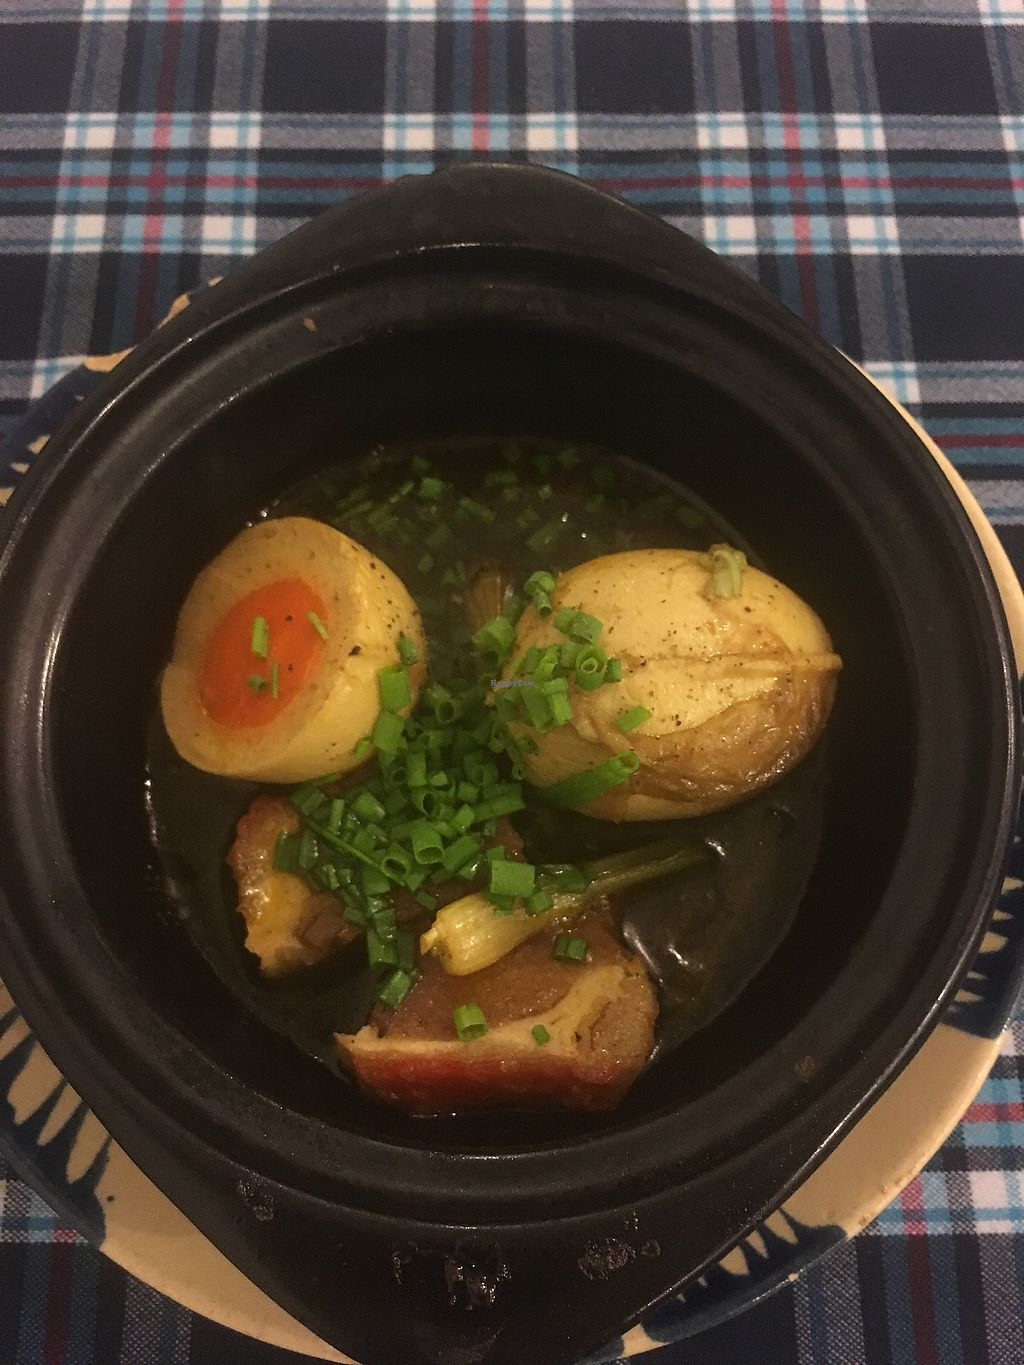 "Photo of Sen Quan Chay  by <a href=""/members/profile/hannahcook04"">hannahcook04</a> <br/>Braised vegan pork with vegan egg 59,000vnd <br/> December 2, 2017  - <a href='/contact/abuse/image/16558/331438'>Report</a>"